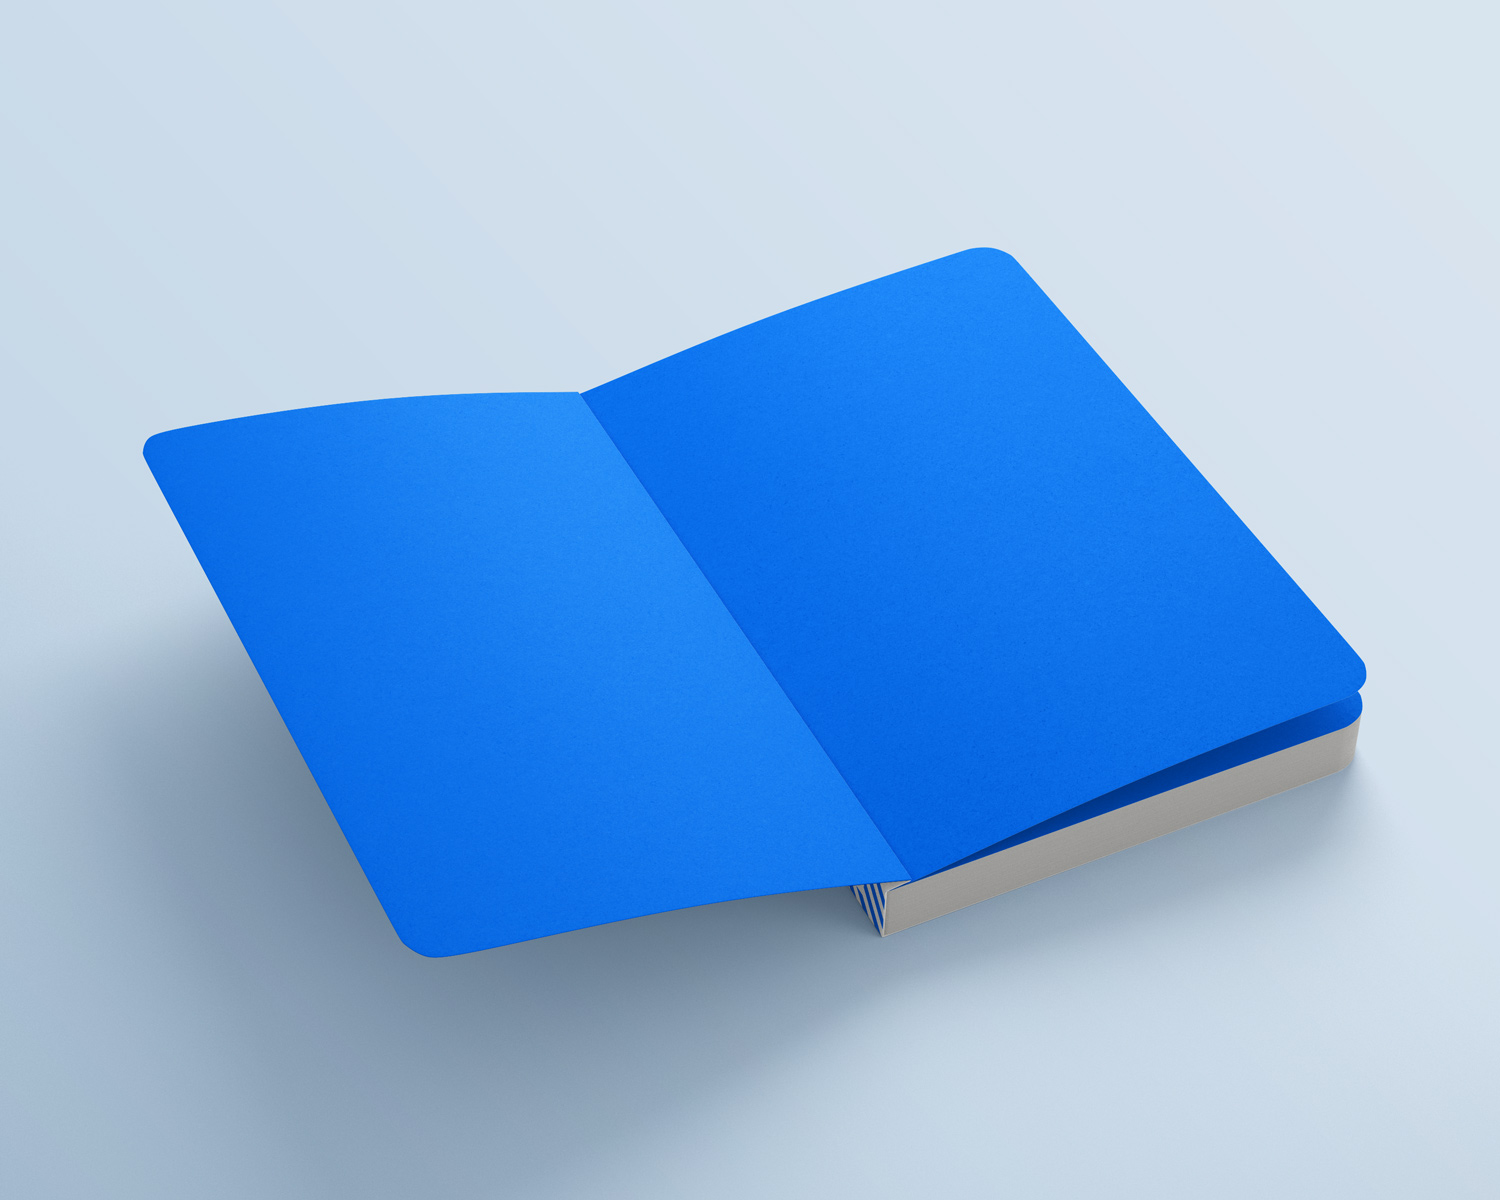 Free-Book-with-Rounded-Corners-Mockup-03